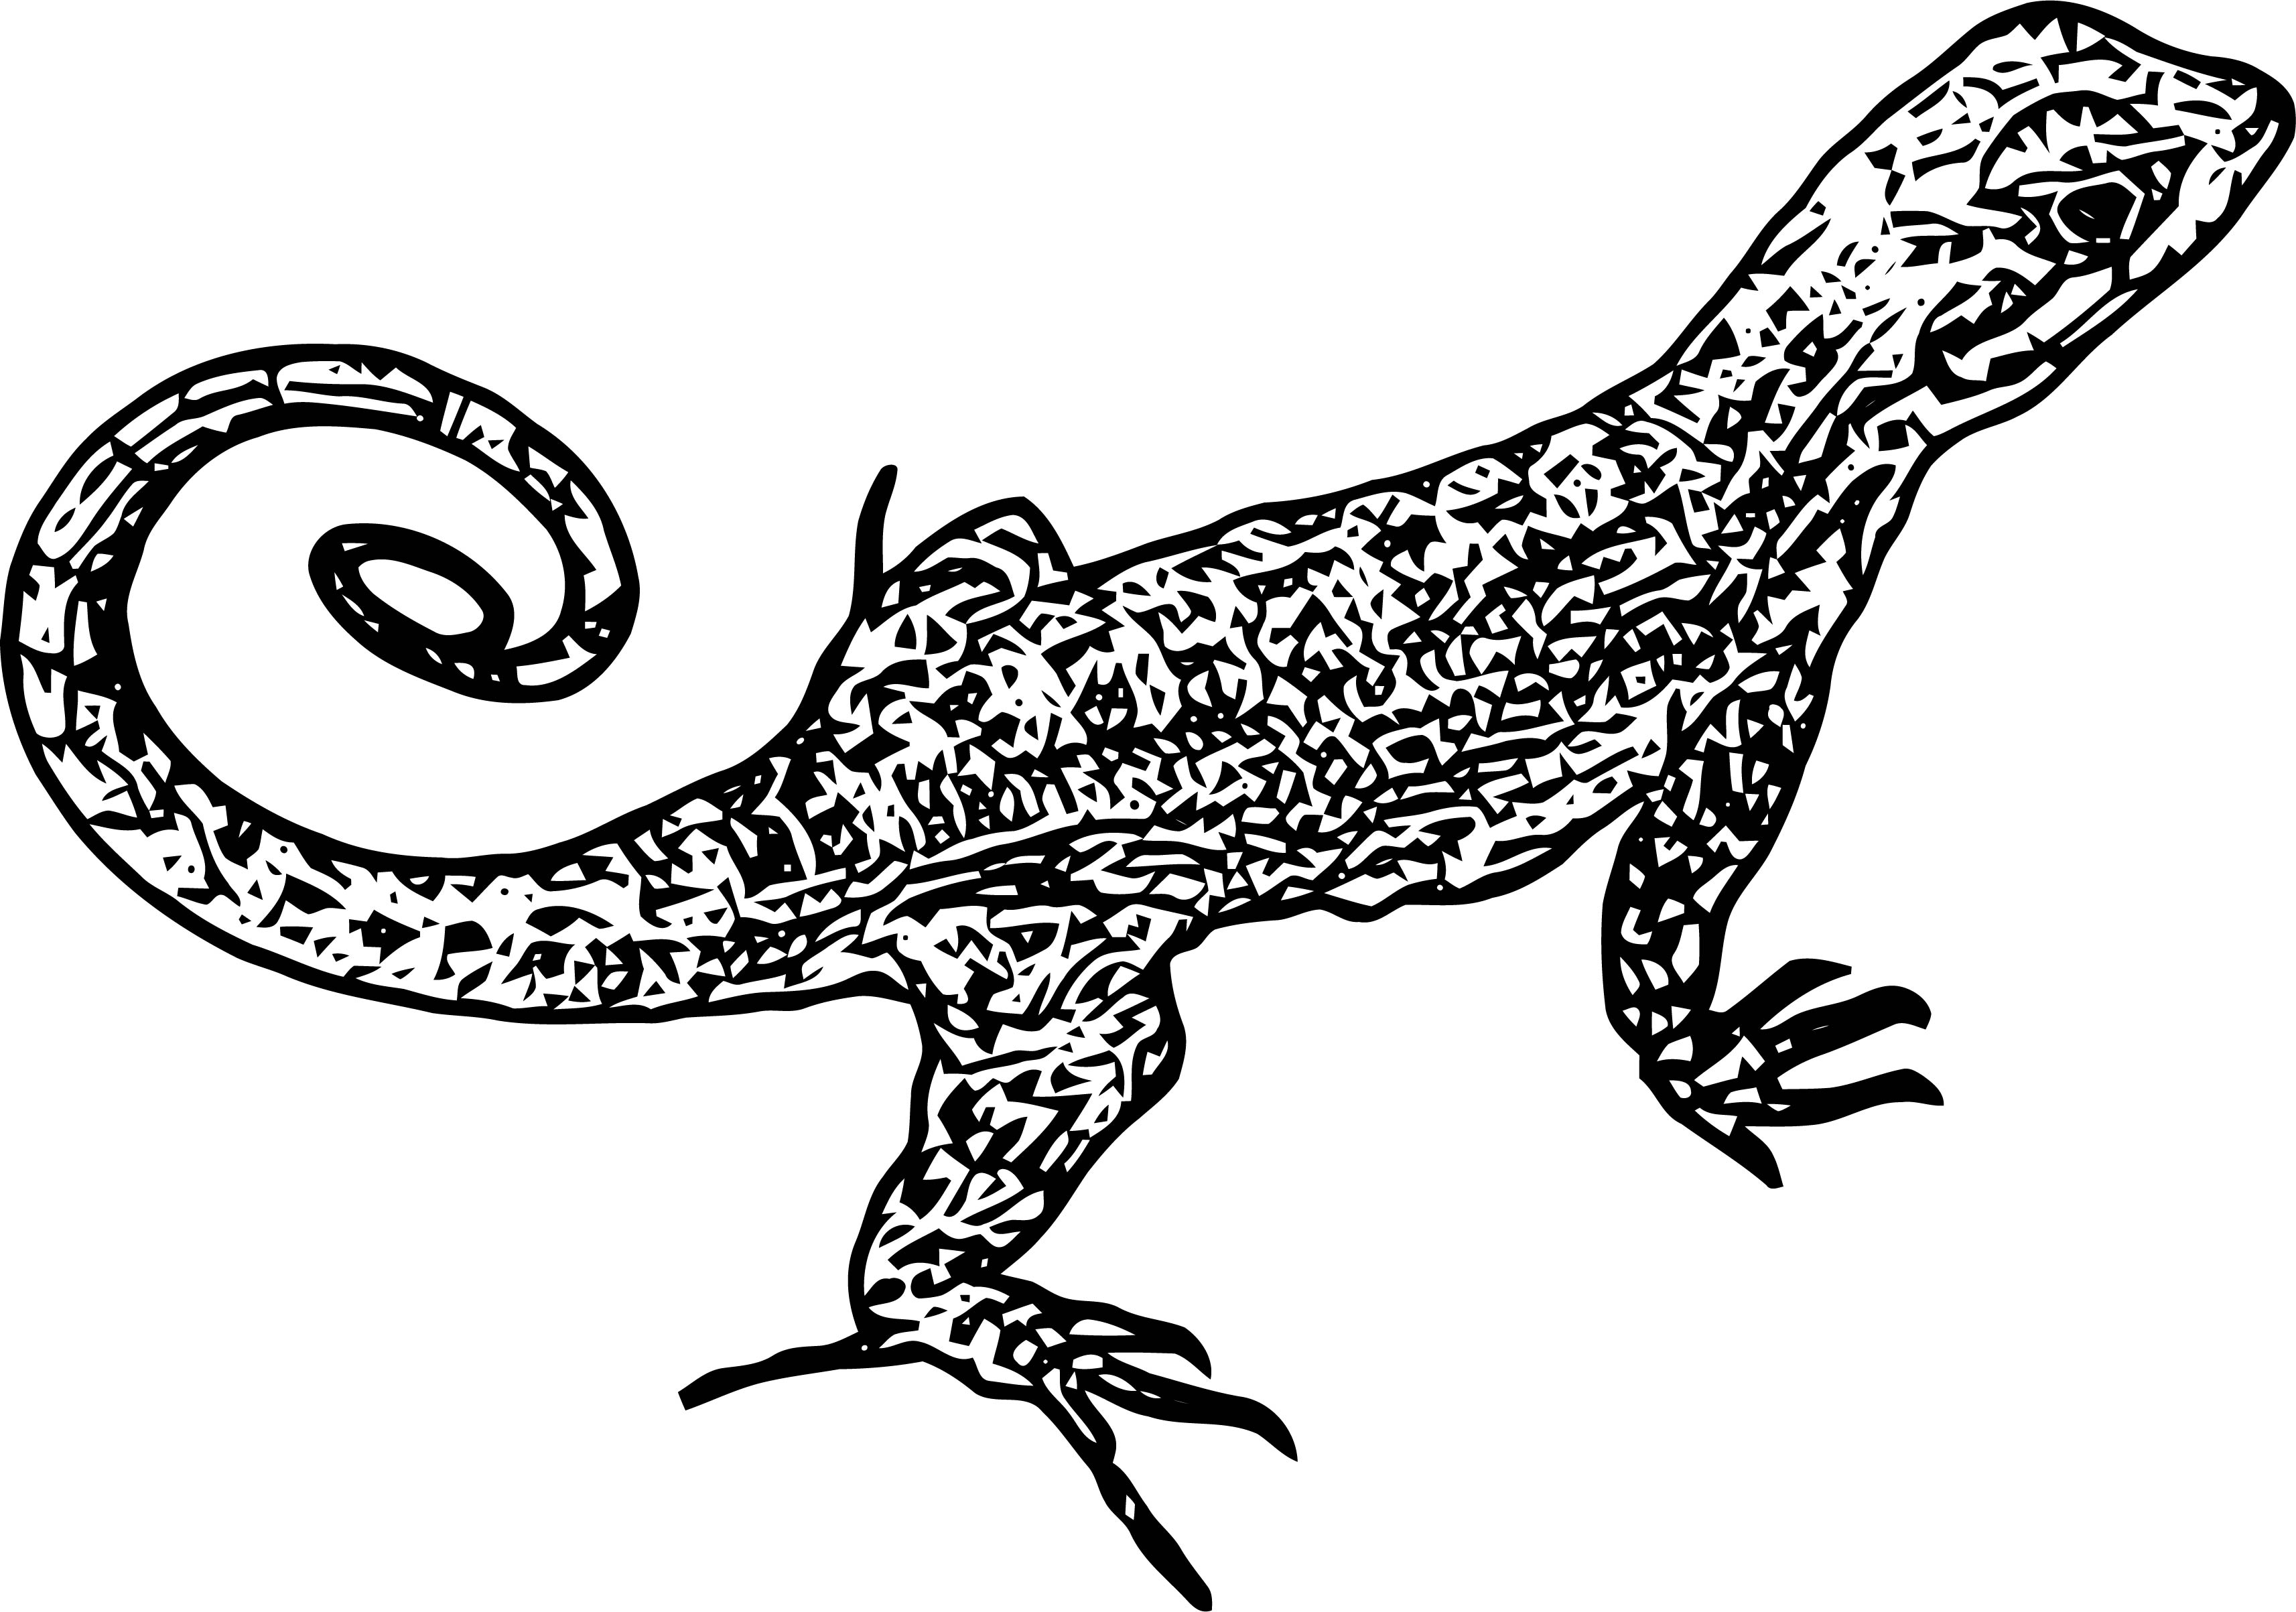 coloring page lizard free lizard coloring pages page coloring lizard